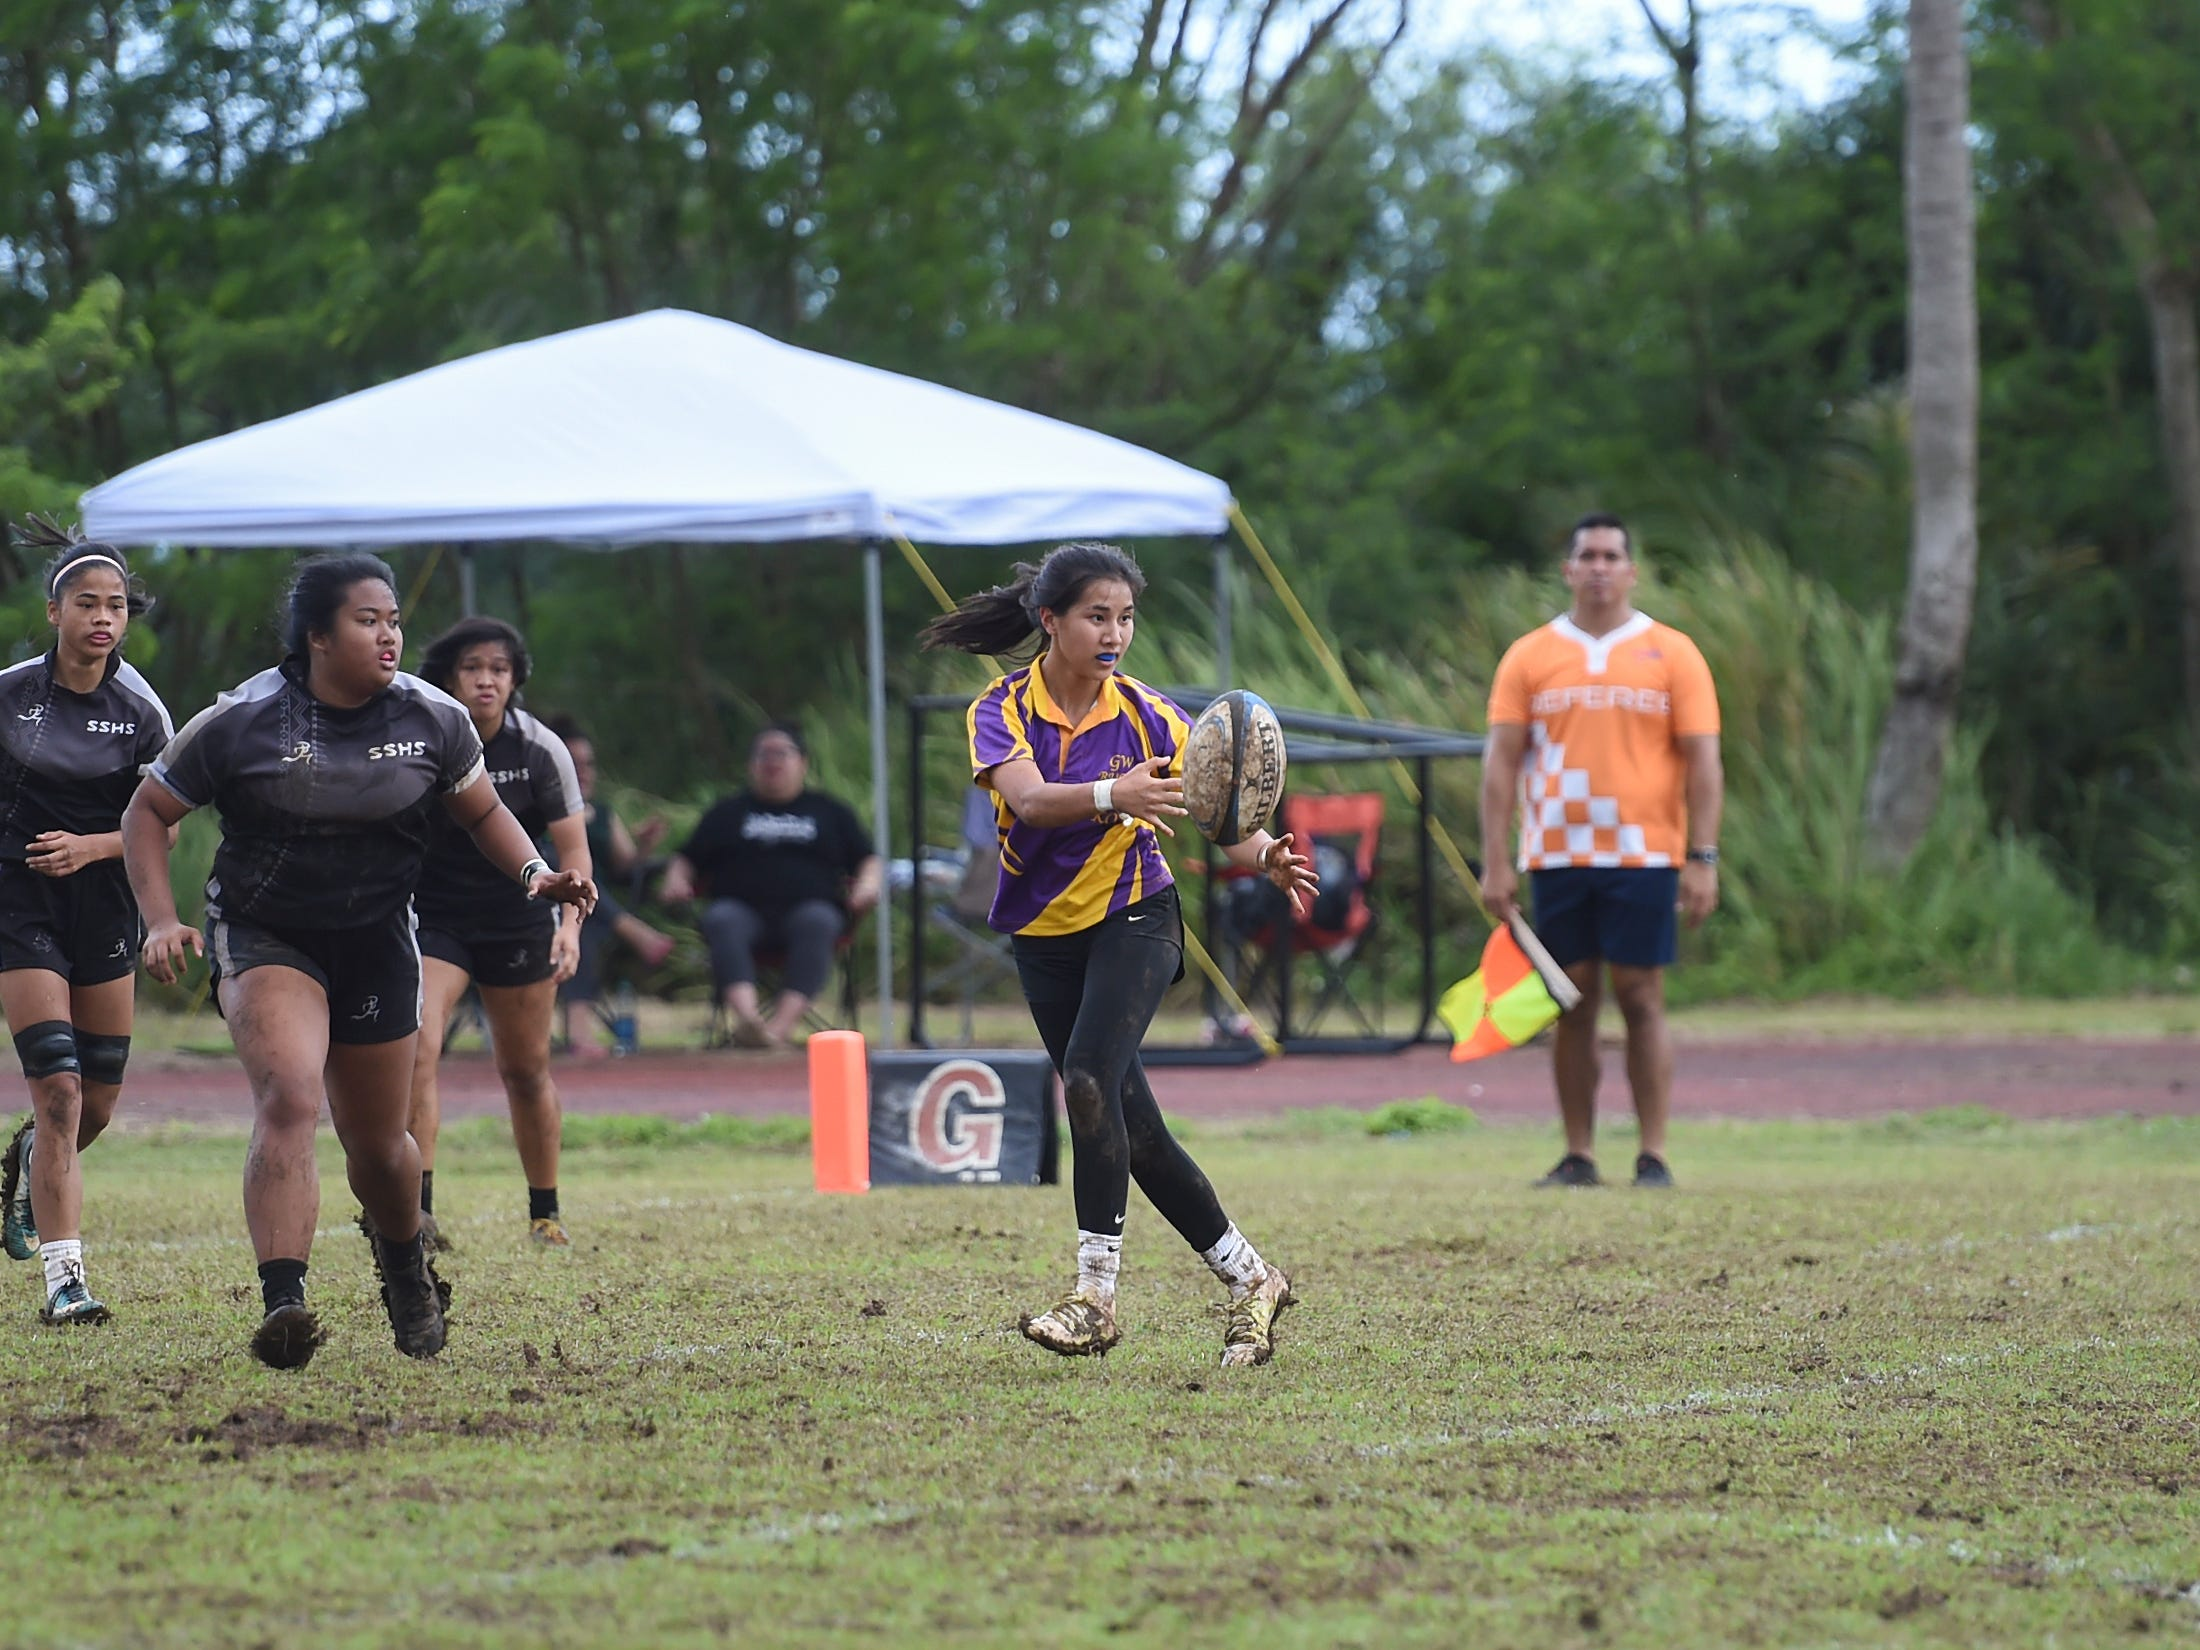 George Washington's Sawyer Park (8) makes a pass during a IIAAG Girls' Rugby match against the Simon Sanchez Sharks at the Southern High School Field, Feb. 9, 2019.